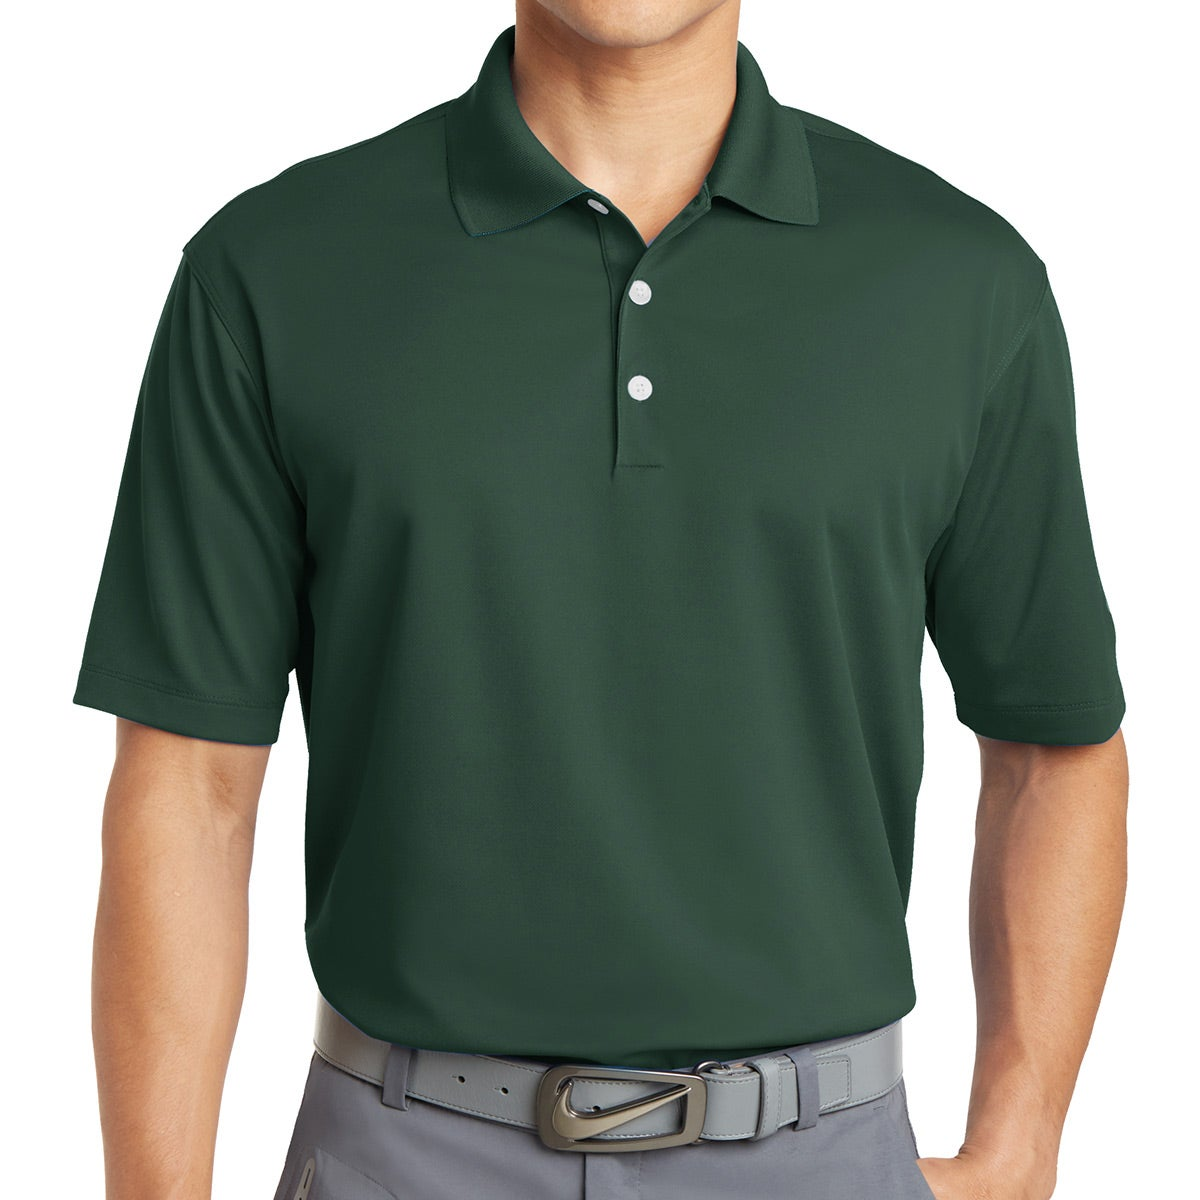 7f4ba07bb CLICK HERE to Order Colors Nike Golf Dri-FIT Micro Pique Polo Shirts  Printed with Your Logo for $43.04 Ea.